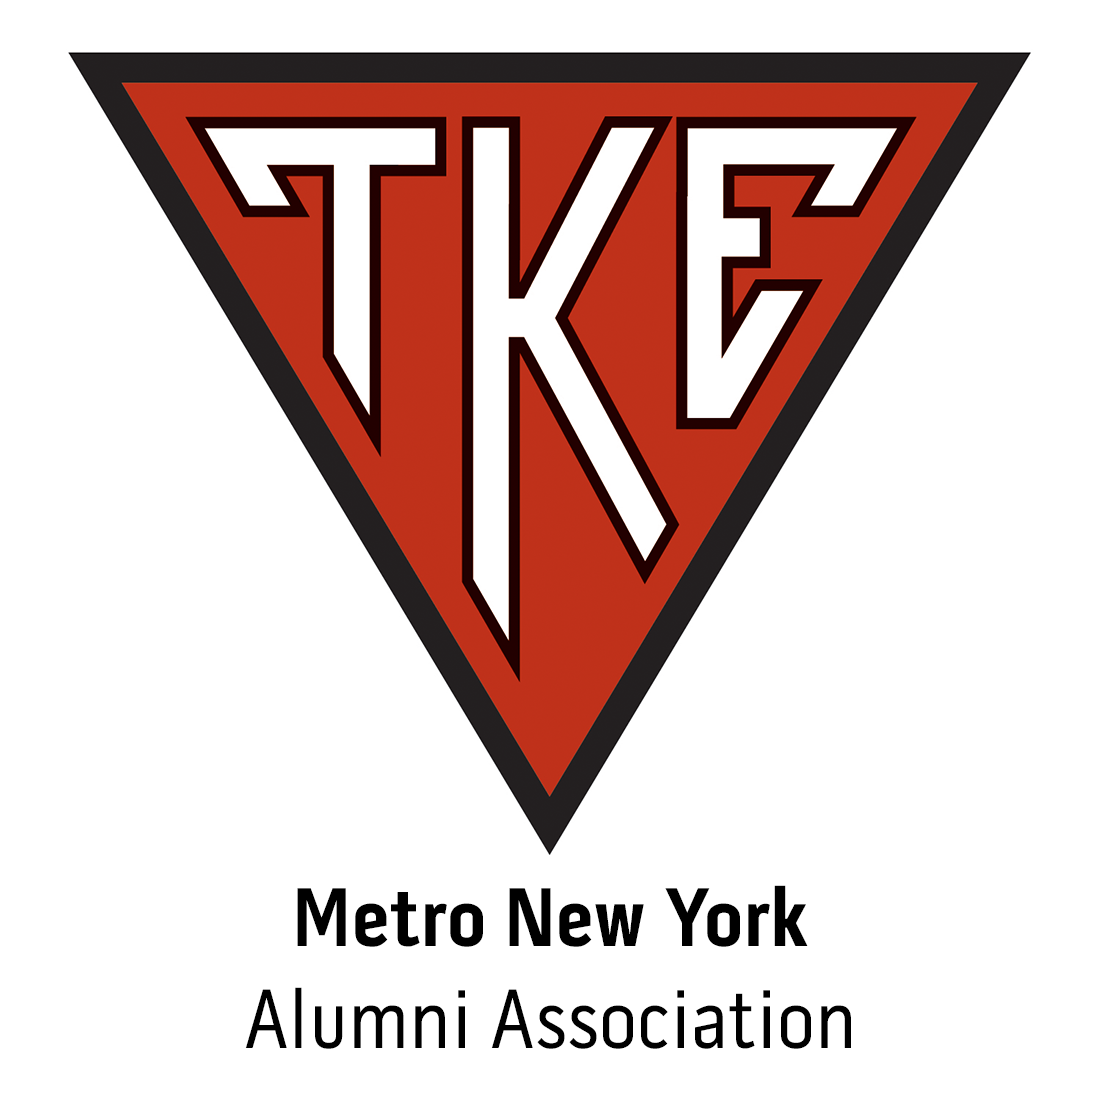 Metro New York Alumni Association Alumni at New York